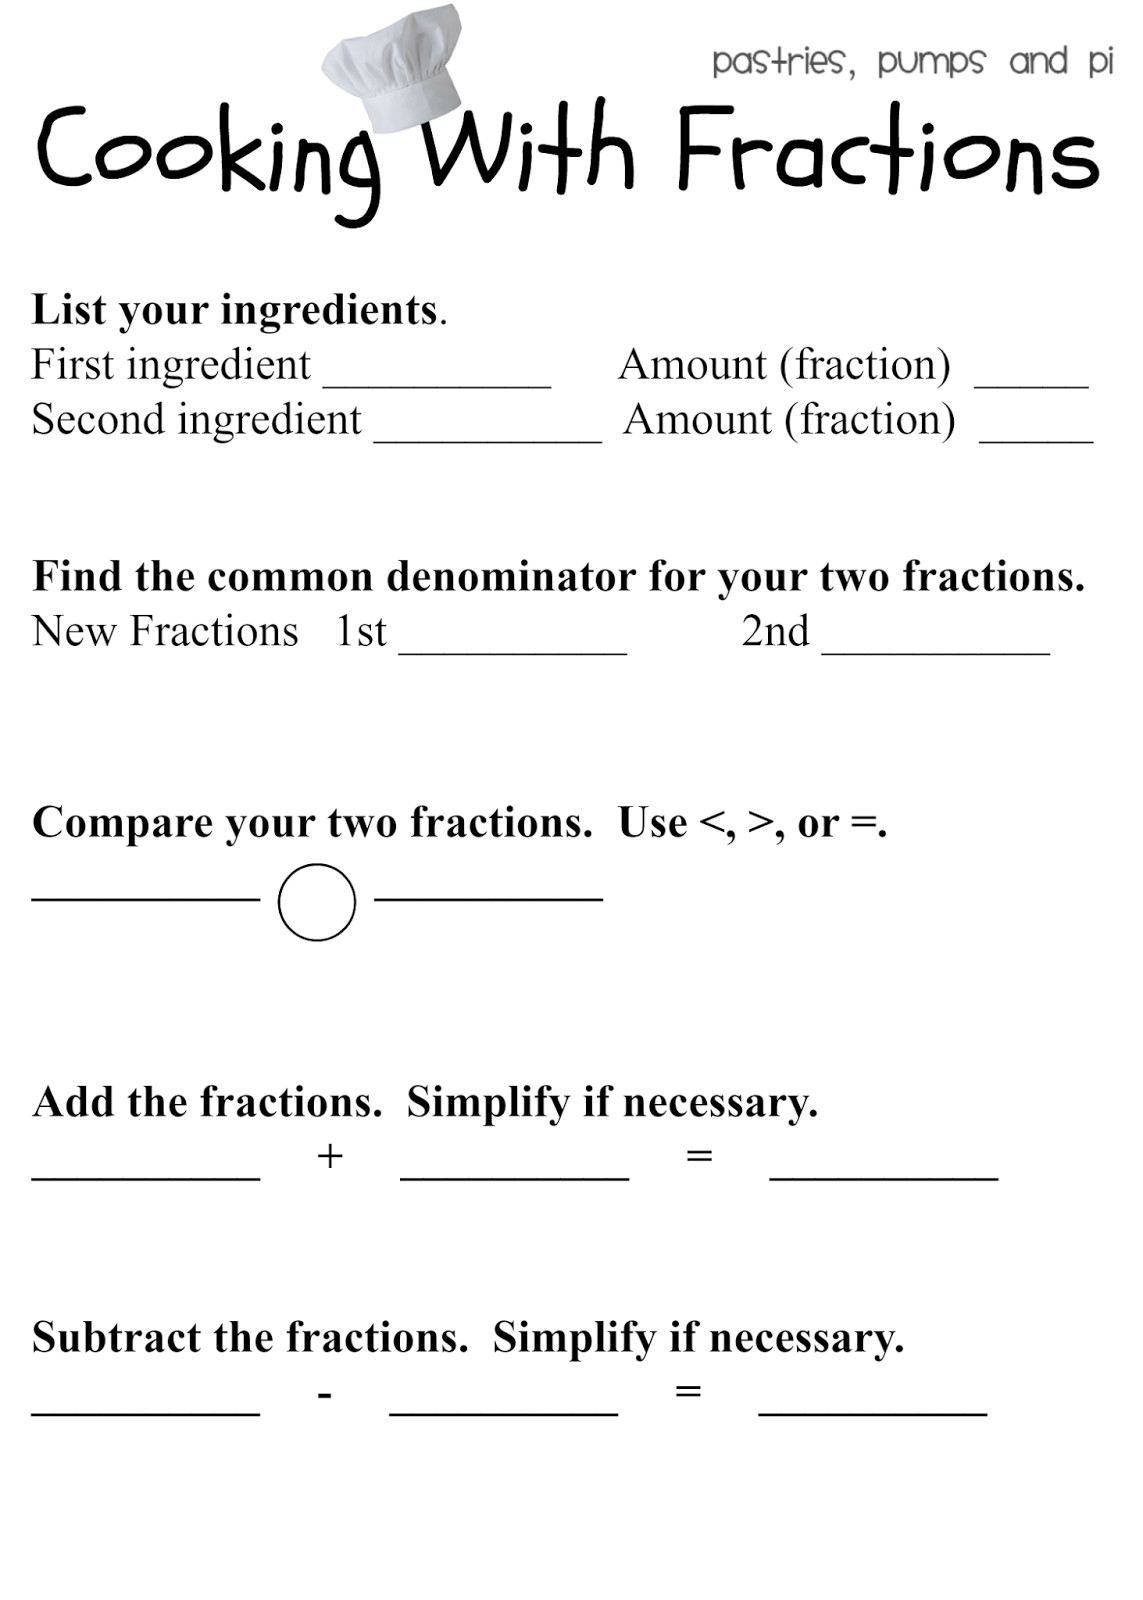 Math Recipe Worksheets cooking with fractions free printable – Cooking Math Worksheets